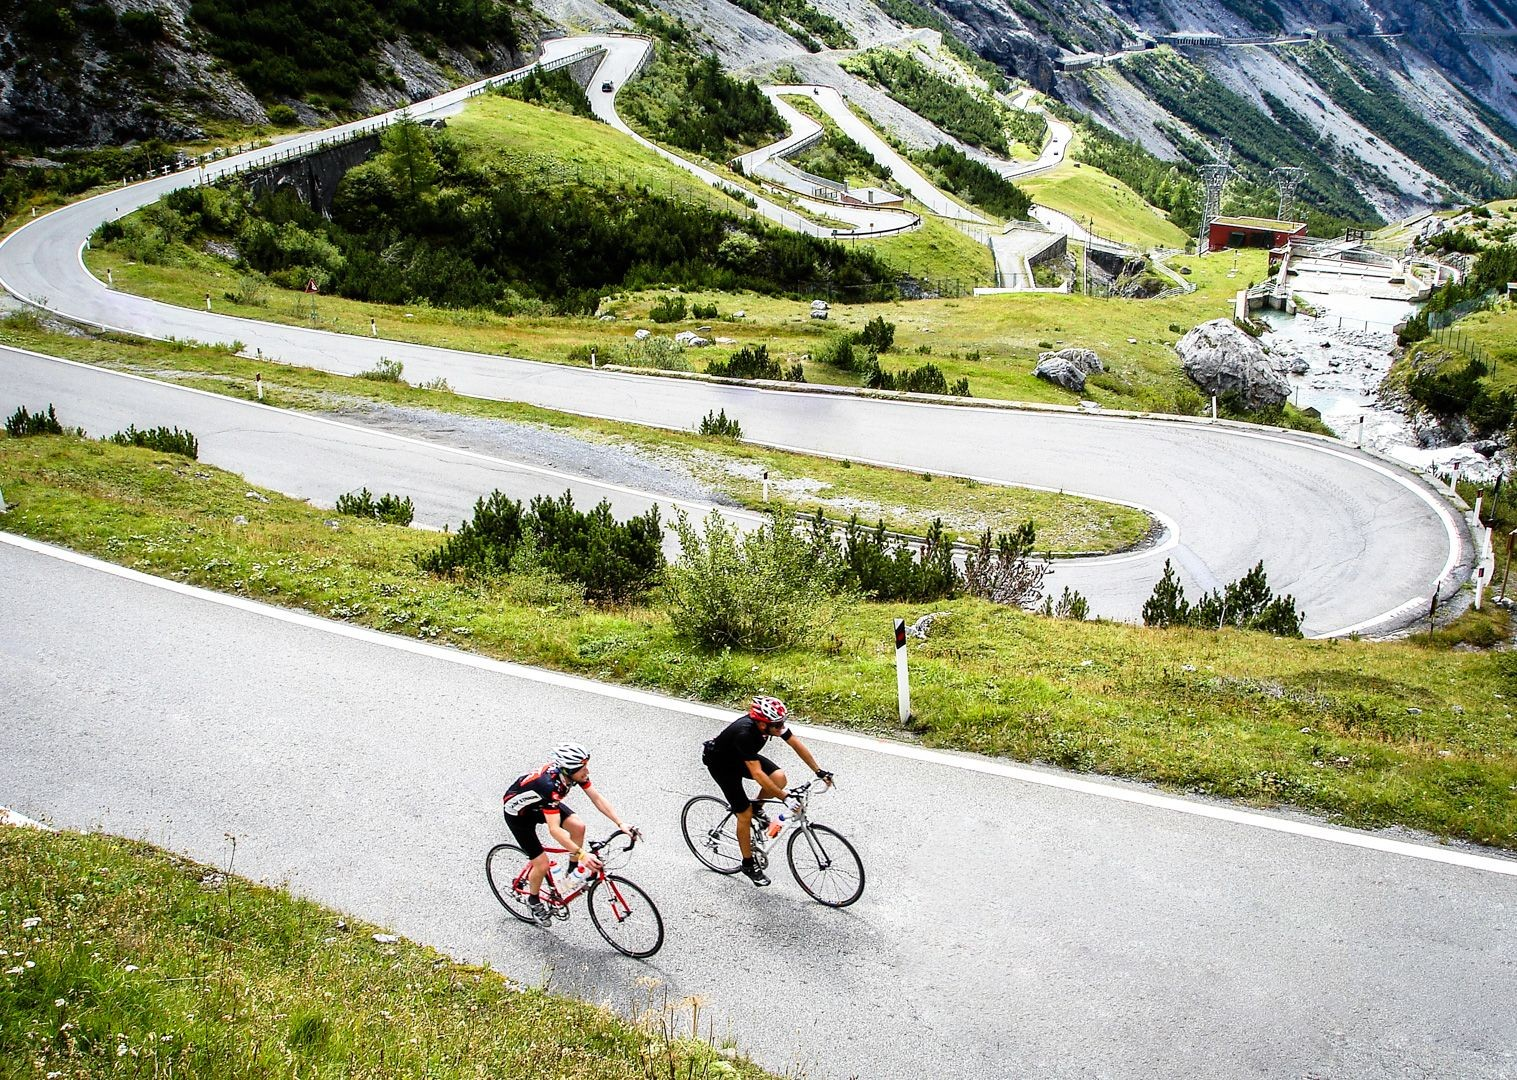 col-italy-cime-di-lavaredo-road-cycling.jpg - Italy - Alps and Dolomites - Giants of the Giro - Guided Road Cycling Holiday - Italia Road Cycling